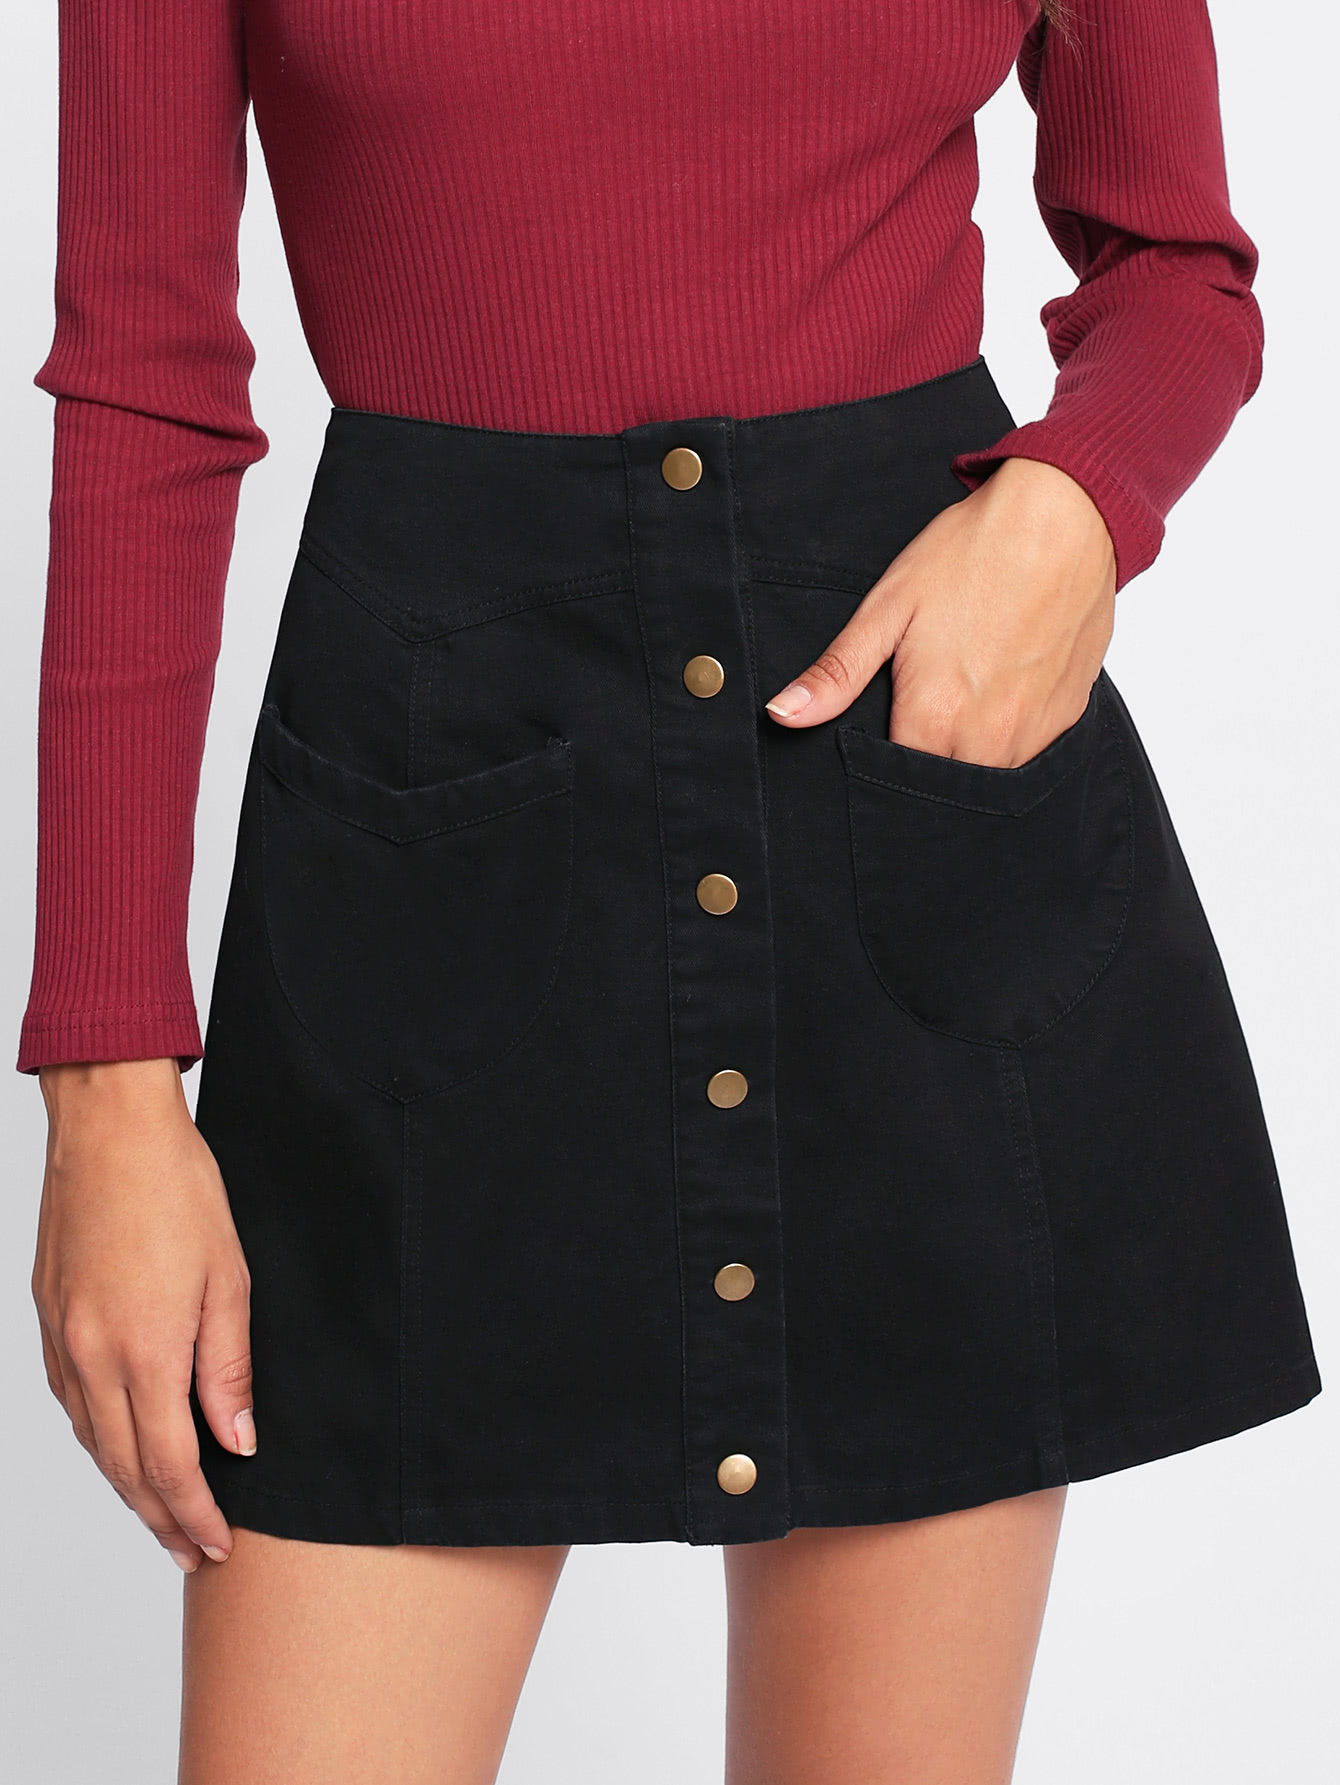 Patch Pocket Button Up Skirt 400 37 102 the main clutch shaft for jinma part number 400 37 102